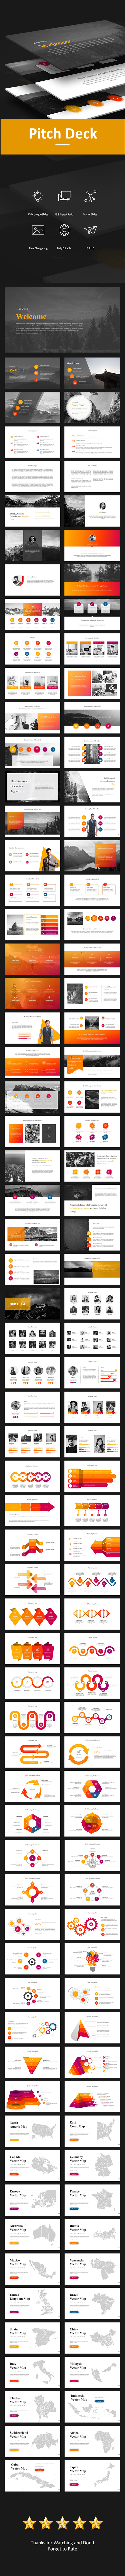 GraphicRiver Pitch Deck Powerpoint 20772049